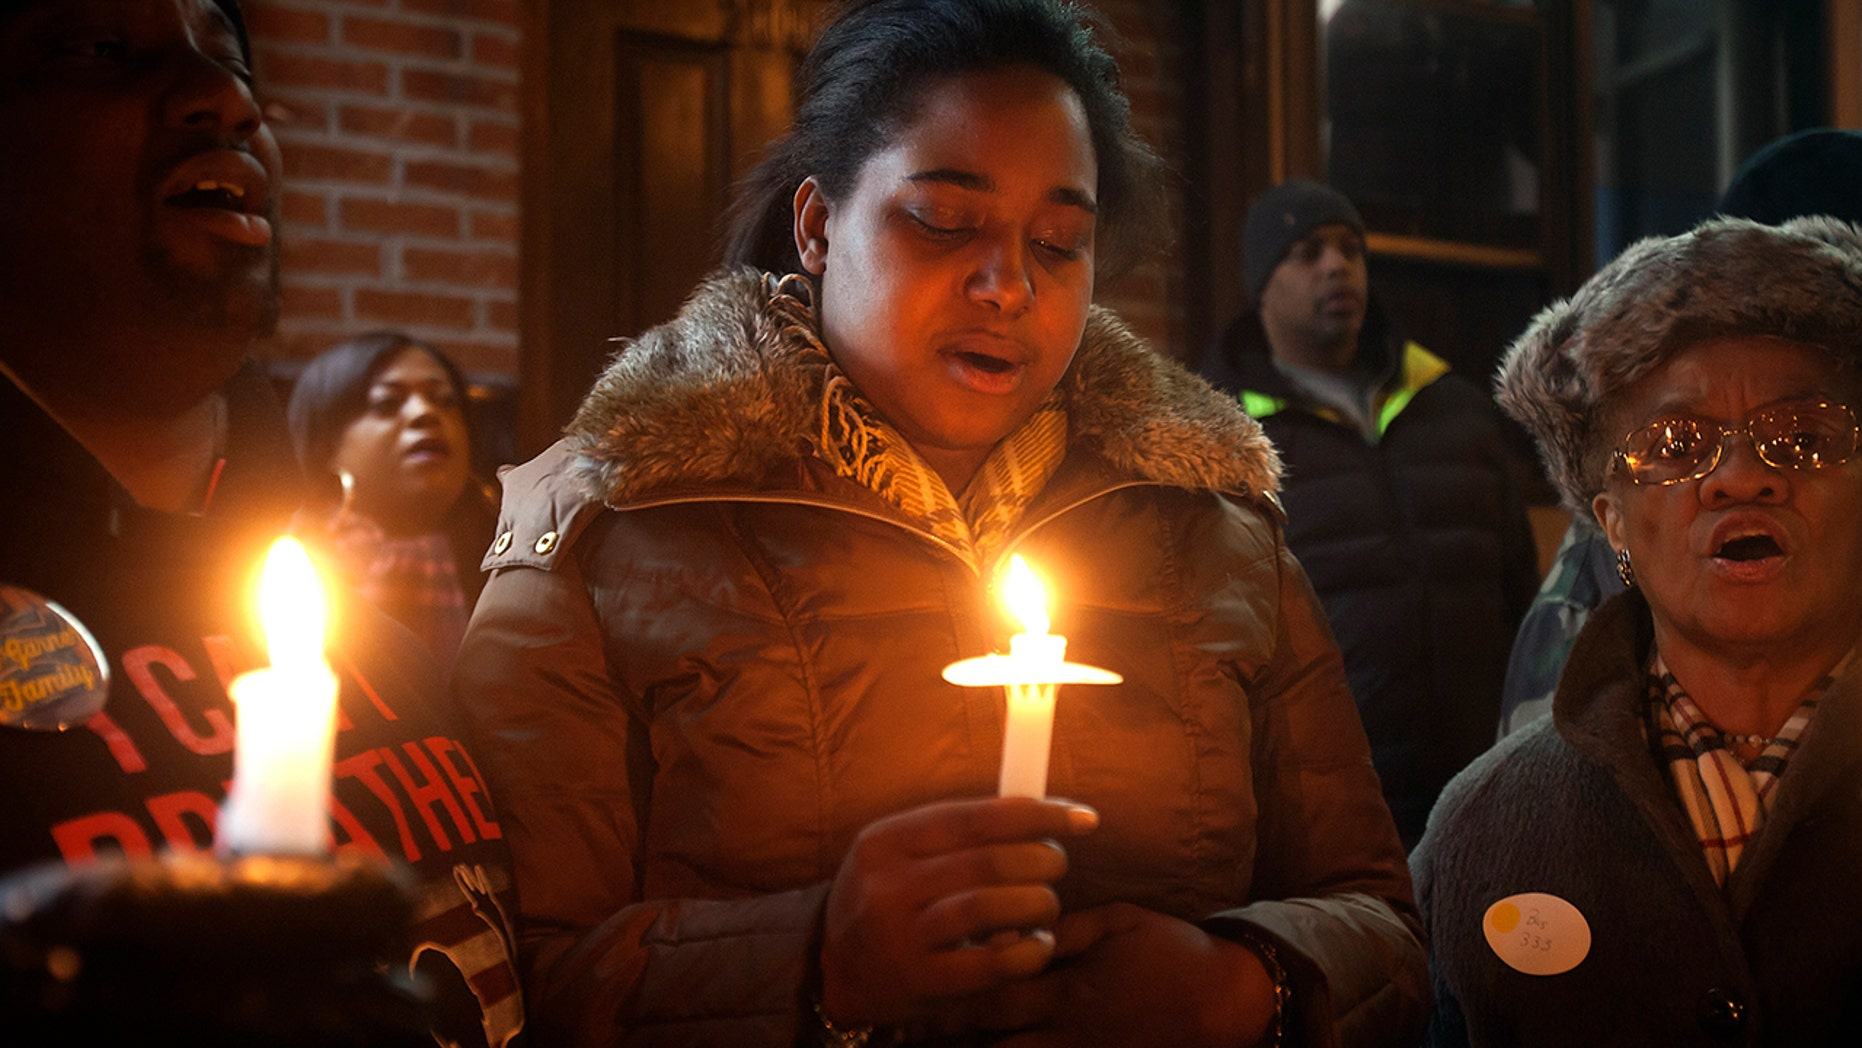 Erica Garner — whose father Eric Garner became a symbol of police brutality when he died after being placed in a chokehold — was in a coma Sunday night after suffering a heart attack, family members said.